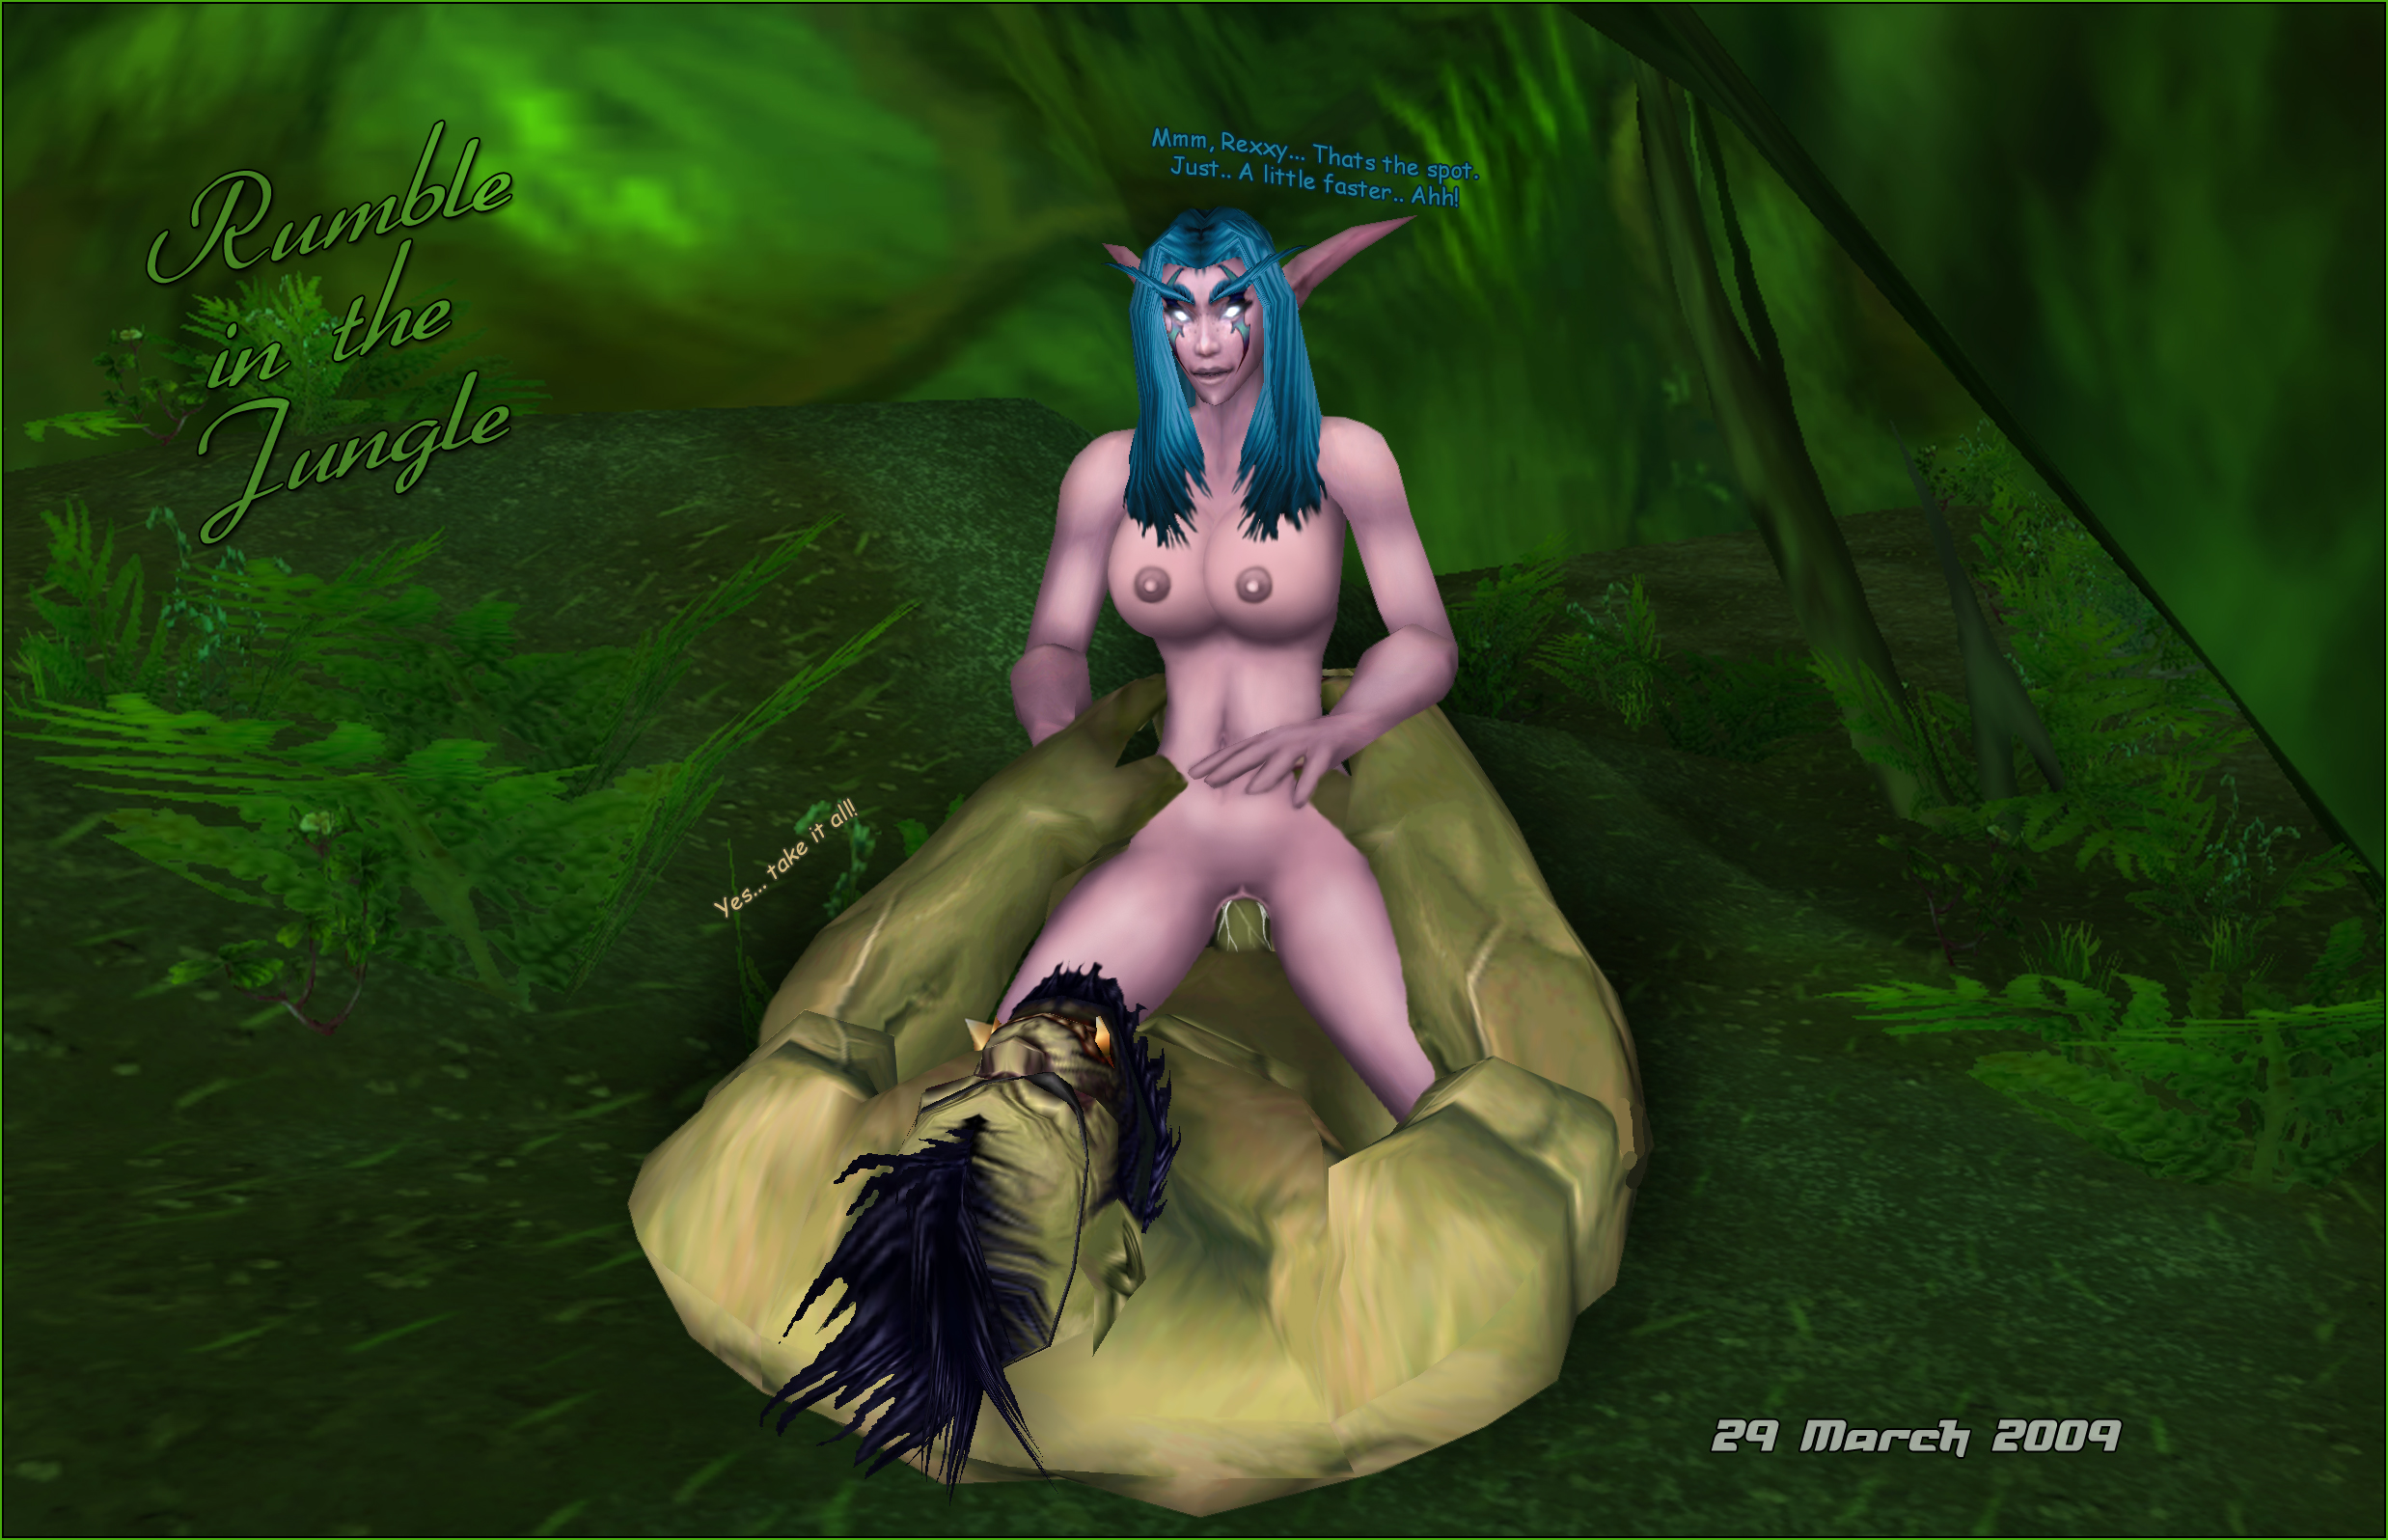 Warcraft blond girl fucks elf erotic girl